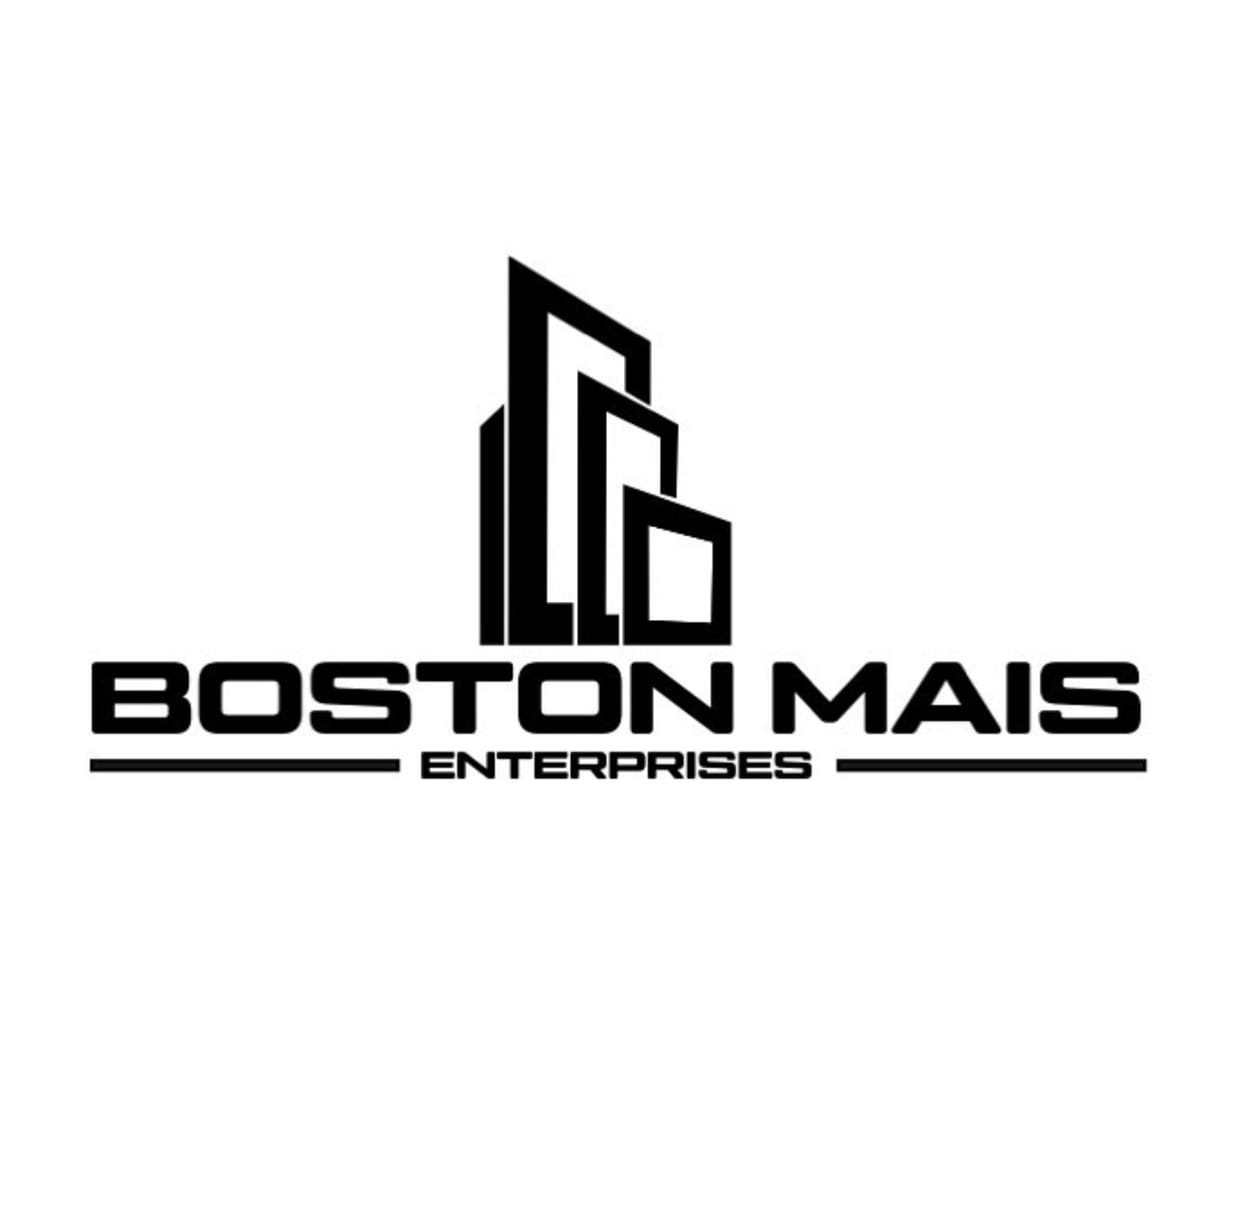 Boston Mais Enterprises Corp